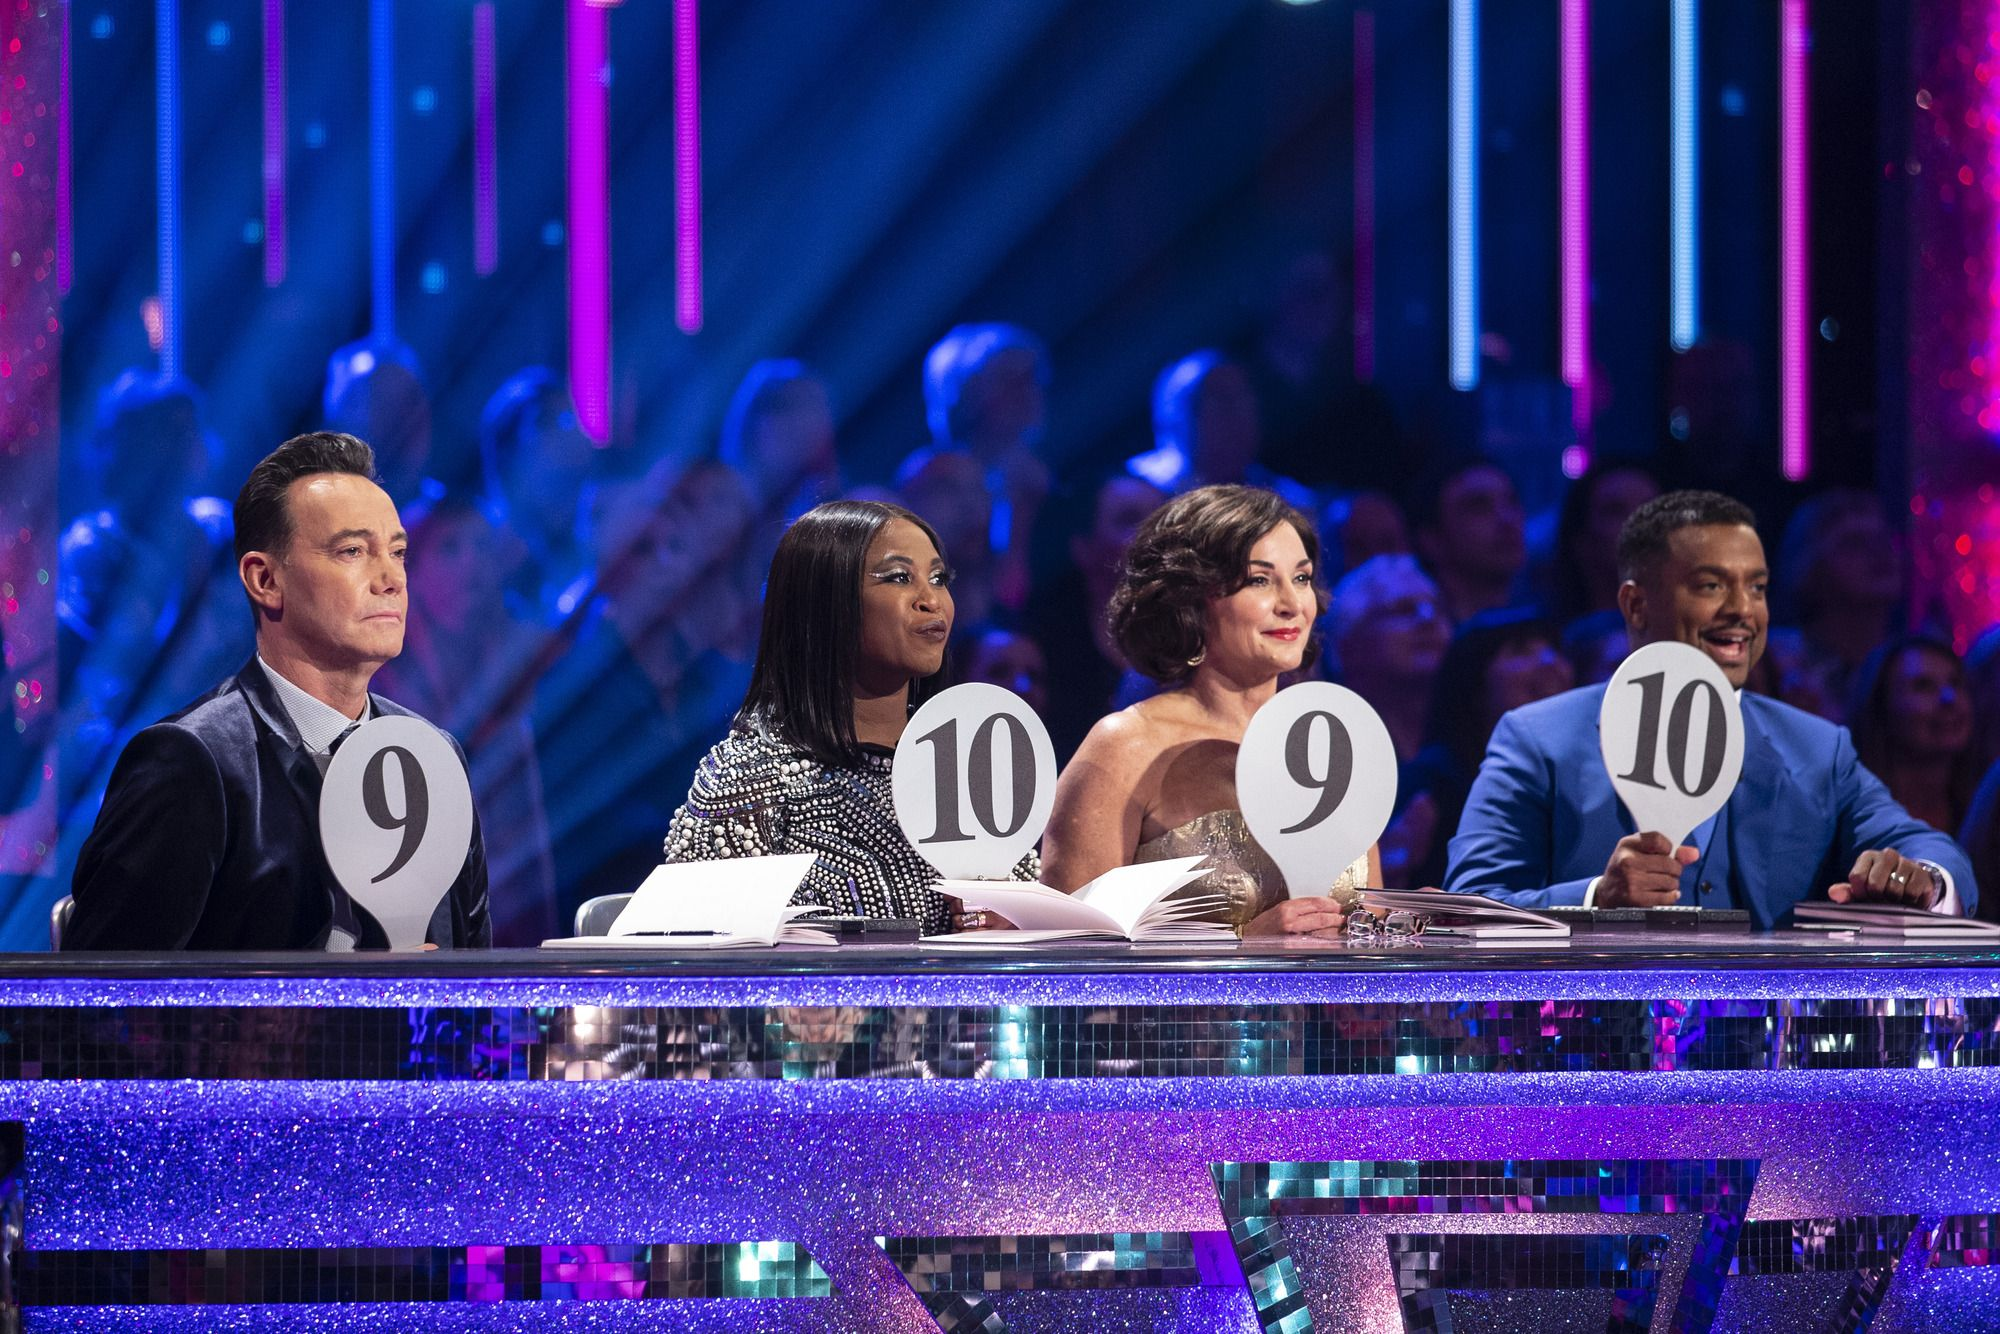 Strictly Come Dancing fans spot a familiar face in the audience